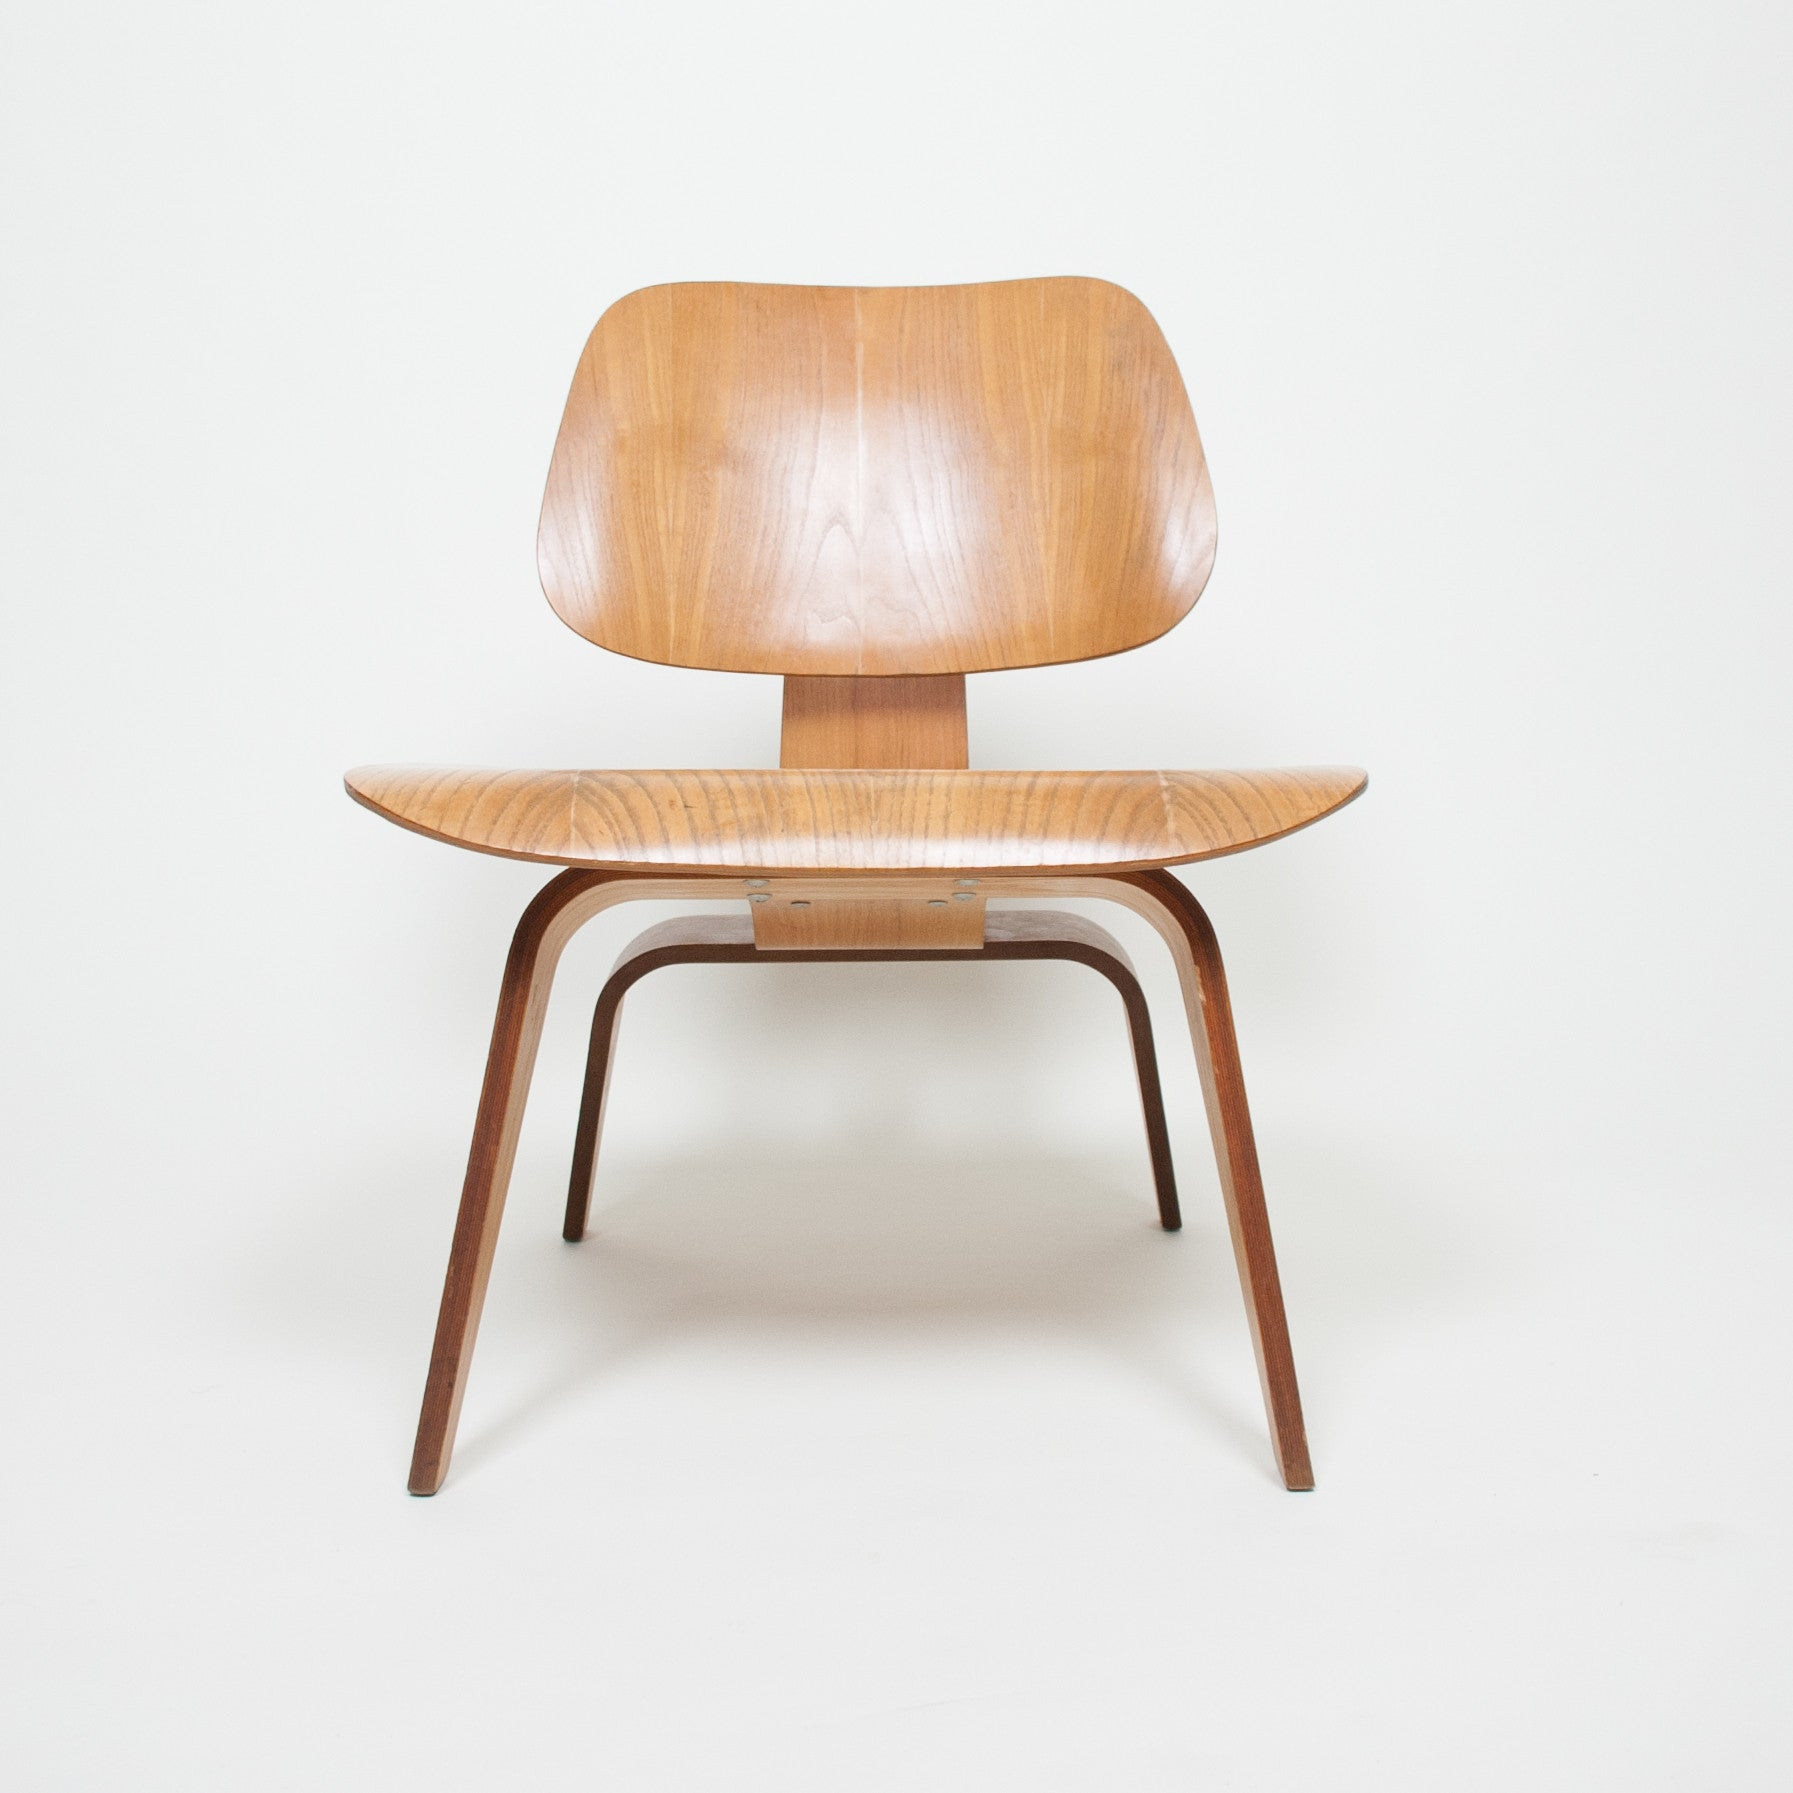 Swell Eames Herman Miller Early 1950S Lcw Plywood Lounge Chair Uwap Interior Chair Design Uwaporg